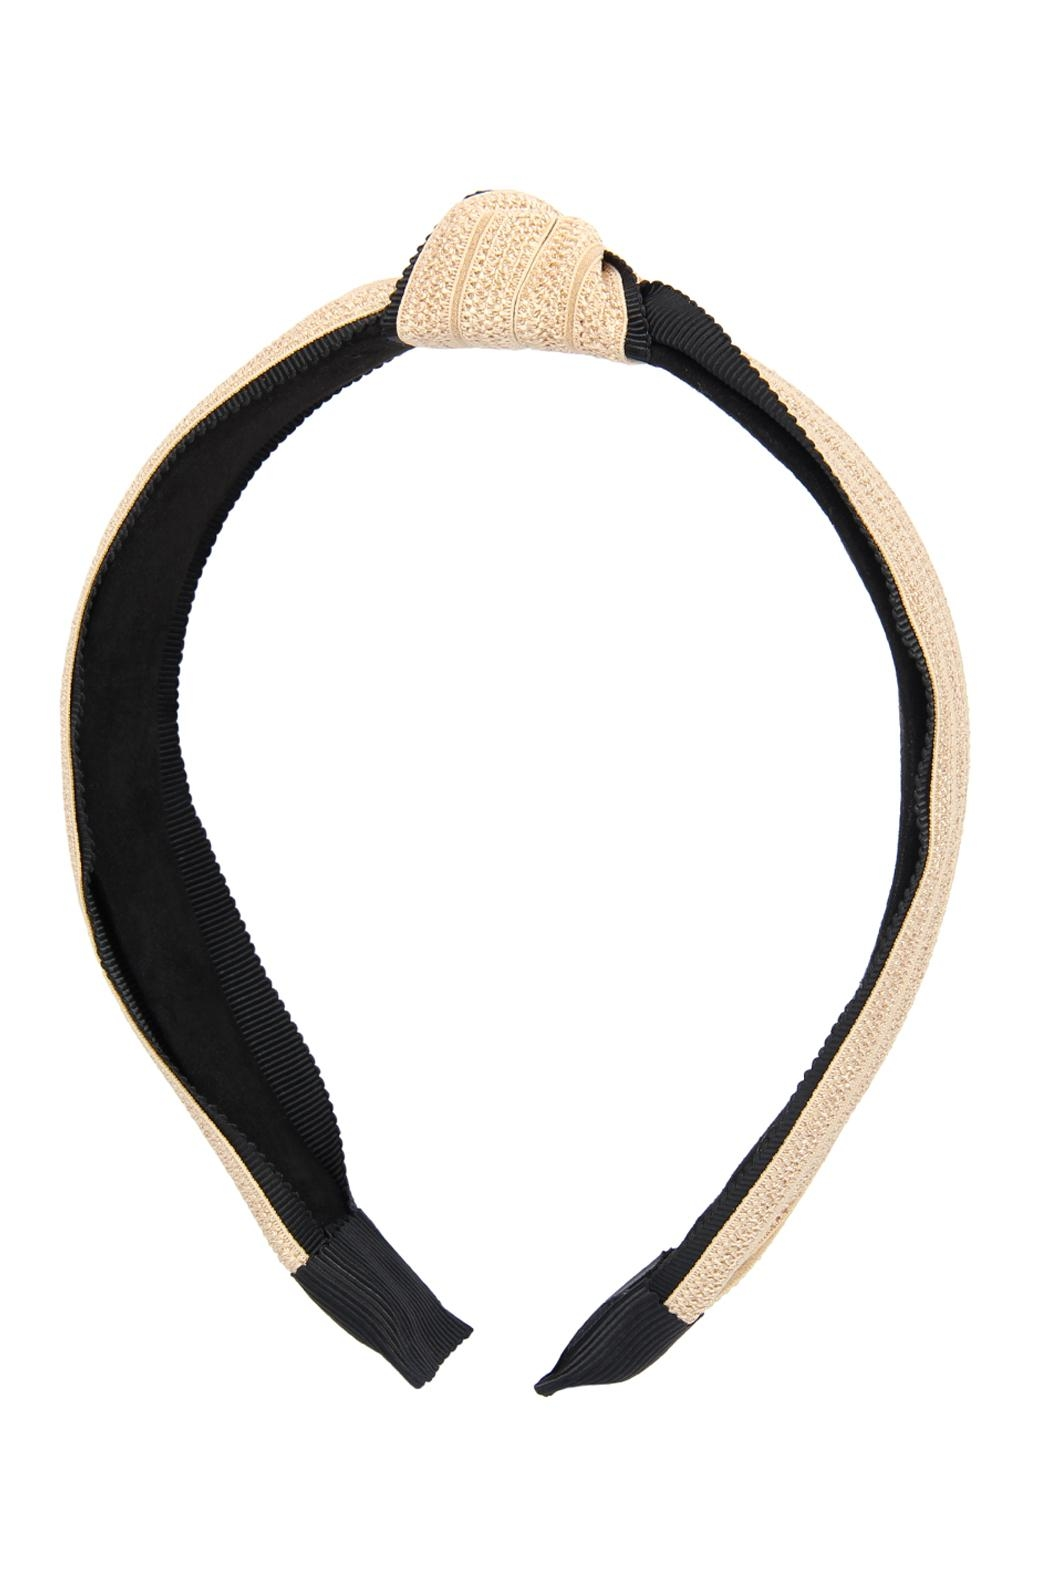 Riah Fashion Knotted Laced Fabric-Headband - Front Full Image